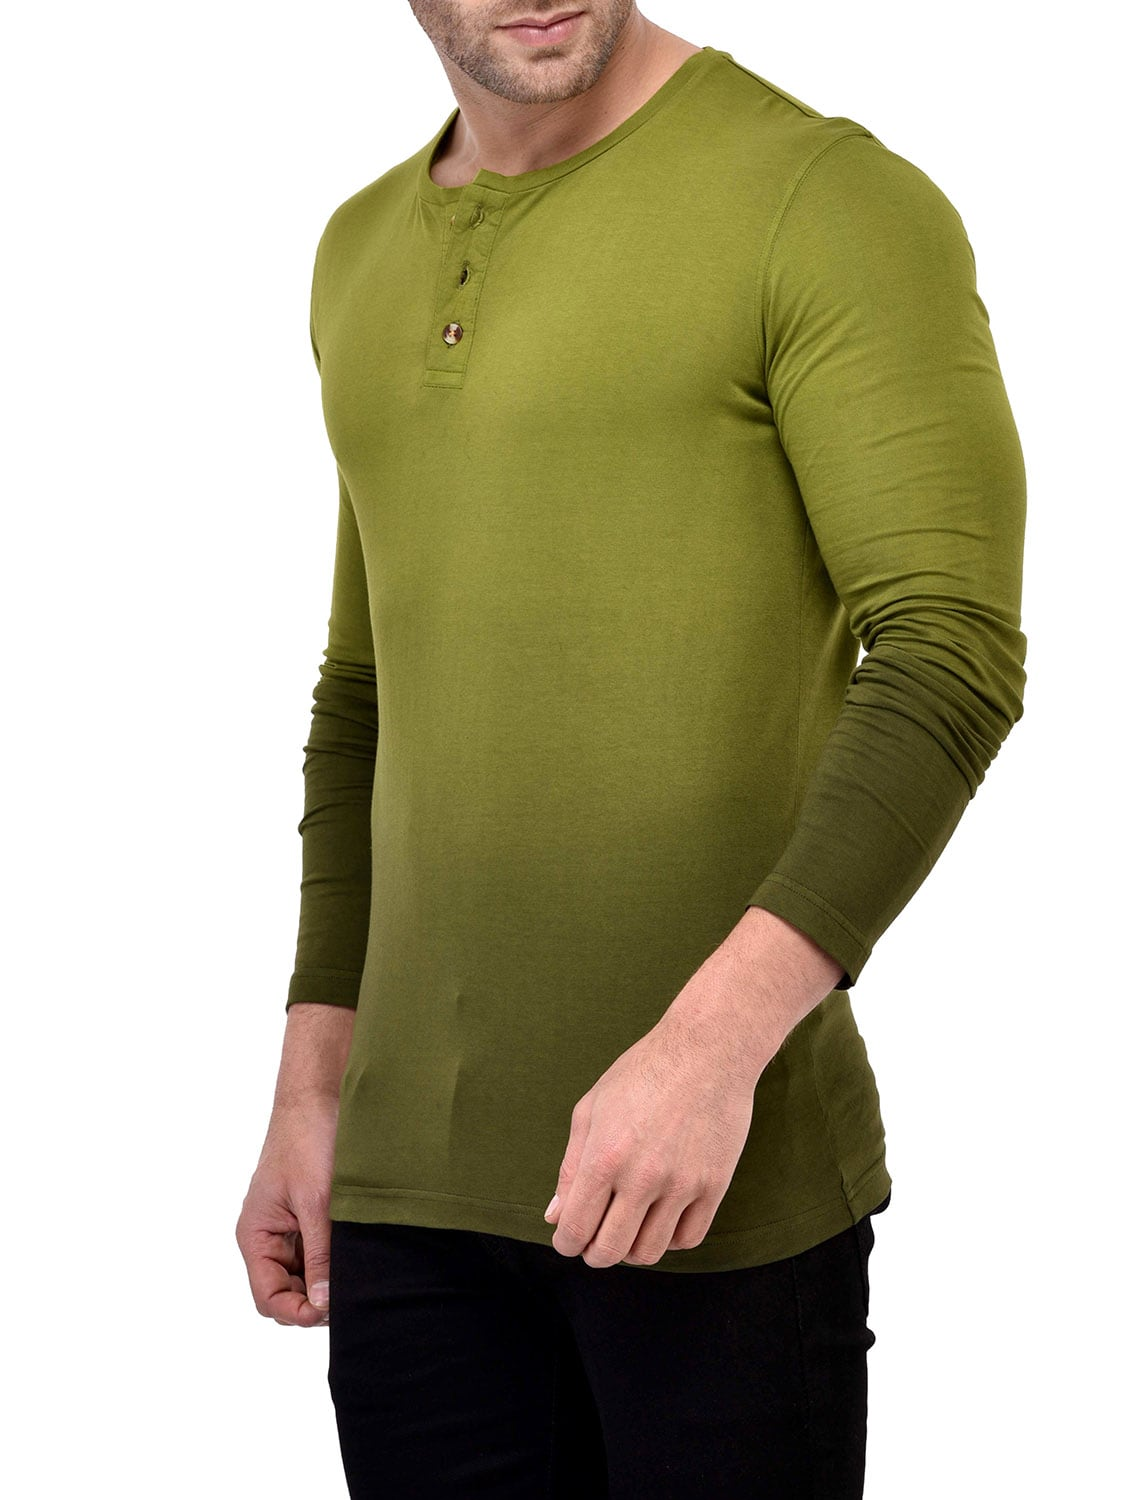 4c345cf48 Buy Olive Green Ombre Cotton T-shirt for Men from Gespo for ₹500 at 44% off  | 2019 Limeroad.com